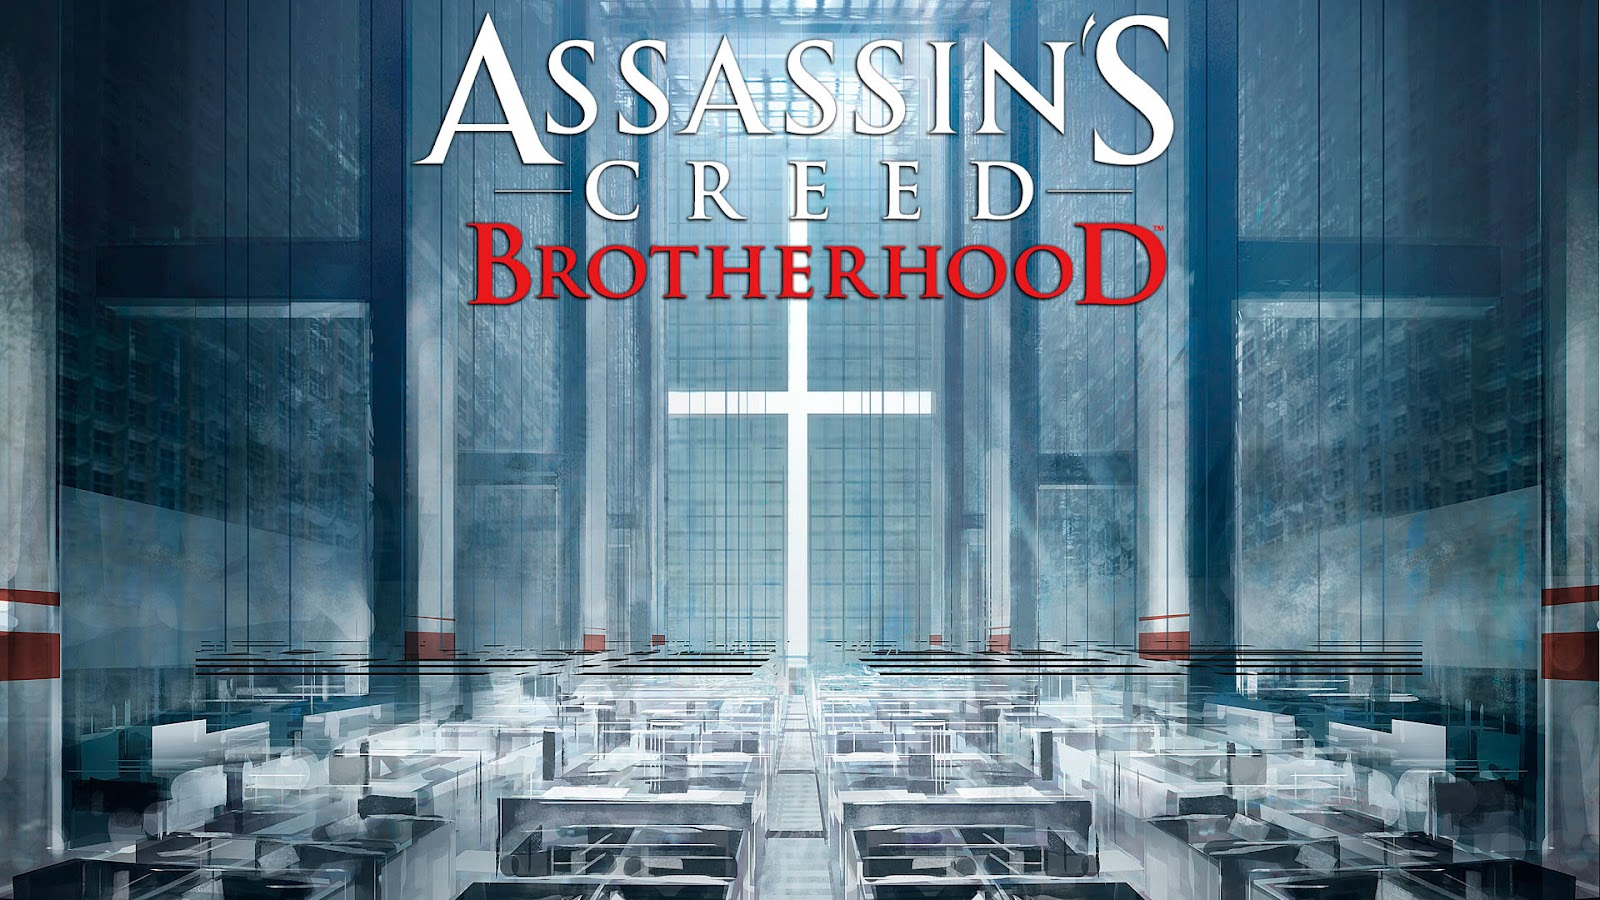 http://2.bp.blogspot.com/-wkt1yLwFlfE/UA1j5ZoYmiI/AAAAAAAAAp8/khqWnBbVajY/s1600/Assassins+Creed+Brotherhood+wallpapers+6.jpg